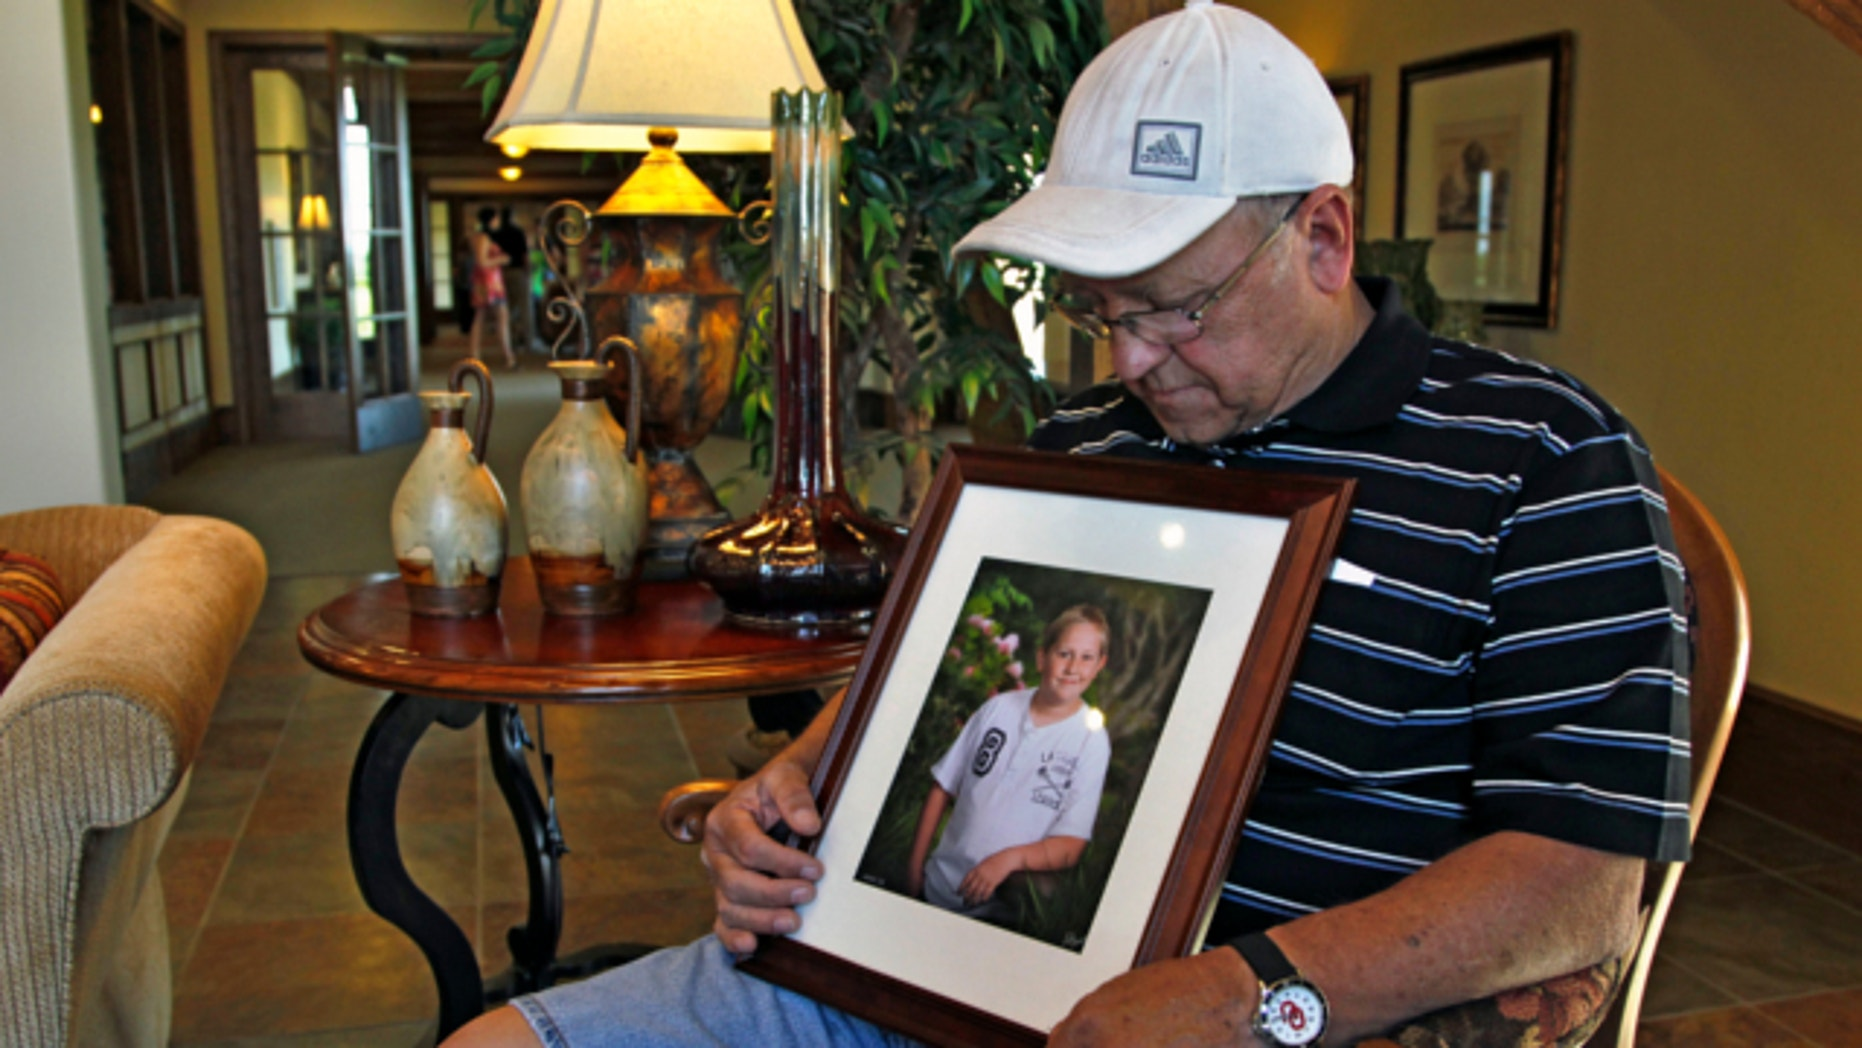 May 22, 2013: Marvin Dixon, the grandfather of 8-year-old tornado victim Kyle Davis, glances down at a photo of his grandson while sitting for a portrait in the lobby of a funeral home where his grandson awaits burial, in Oklahoma City.